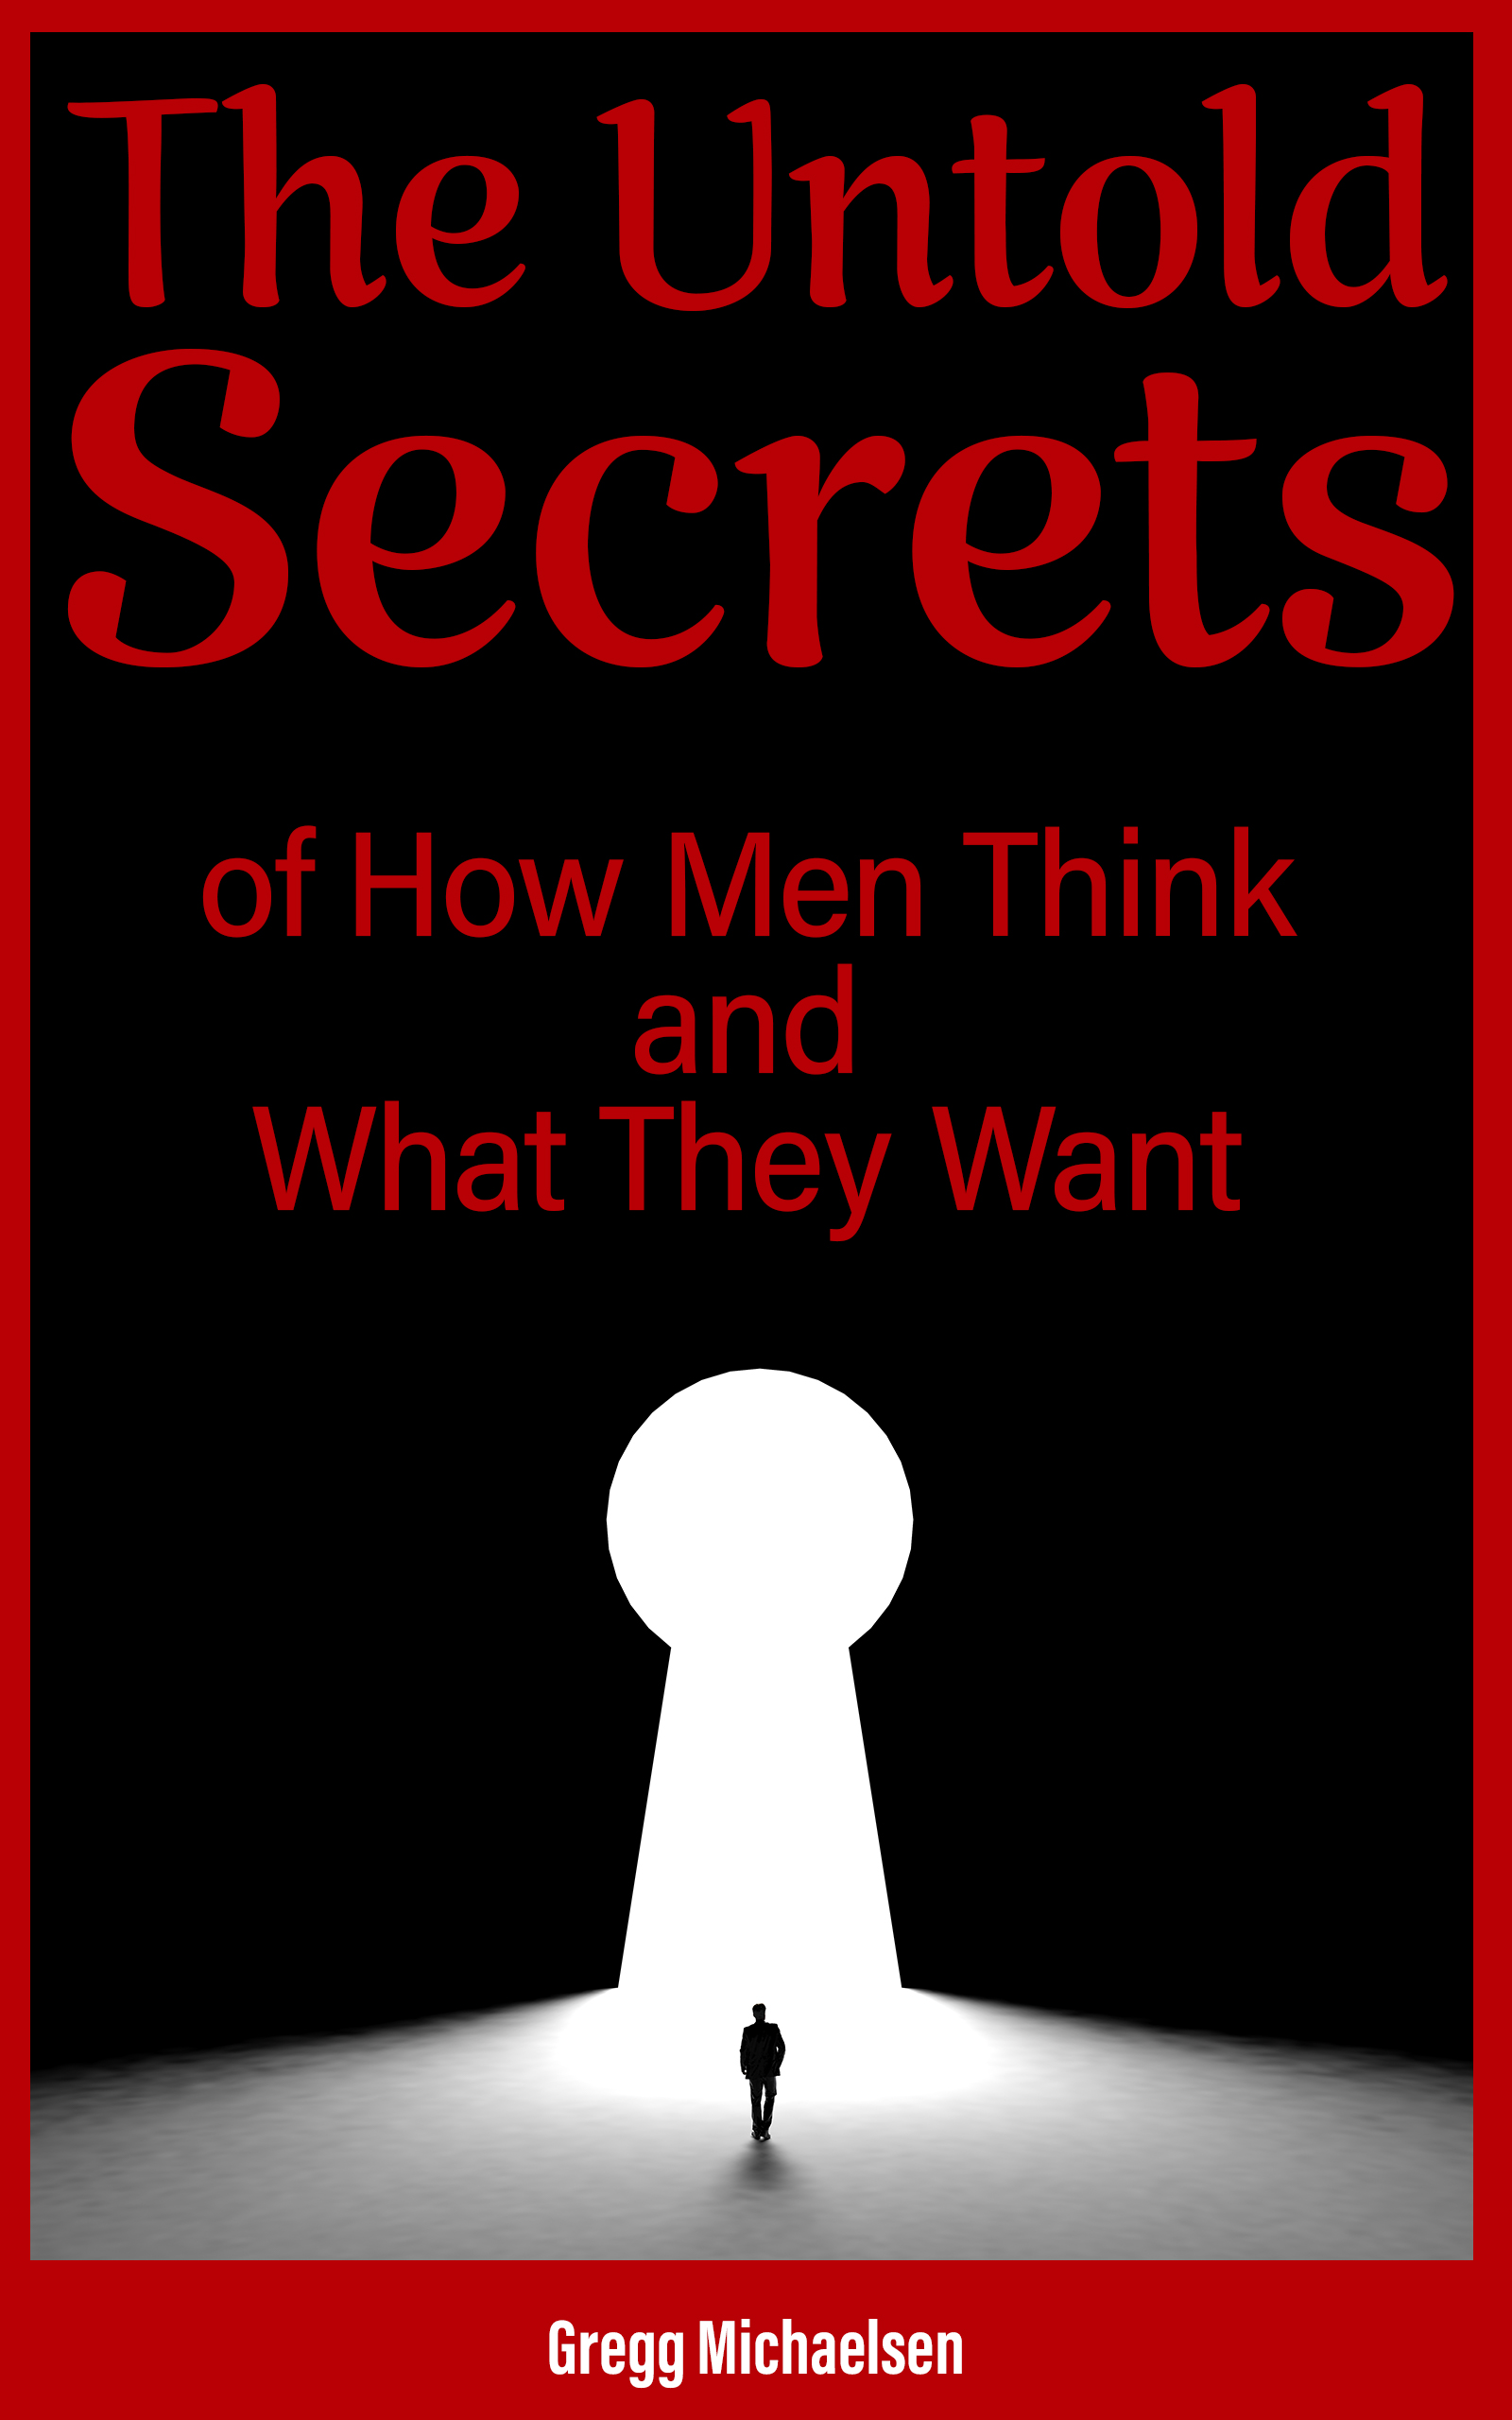 The Untold Secrets of How Men Think and What They Want